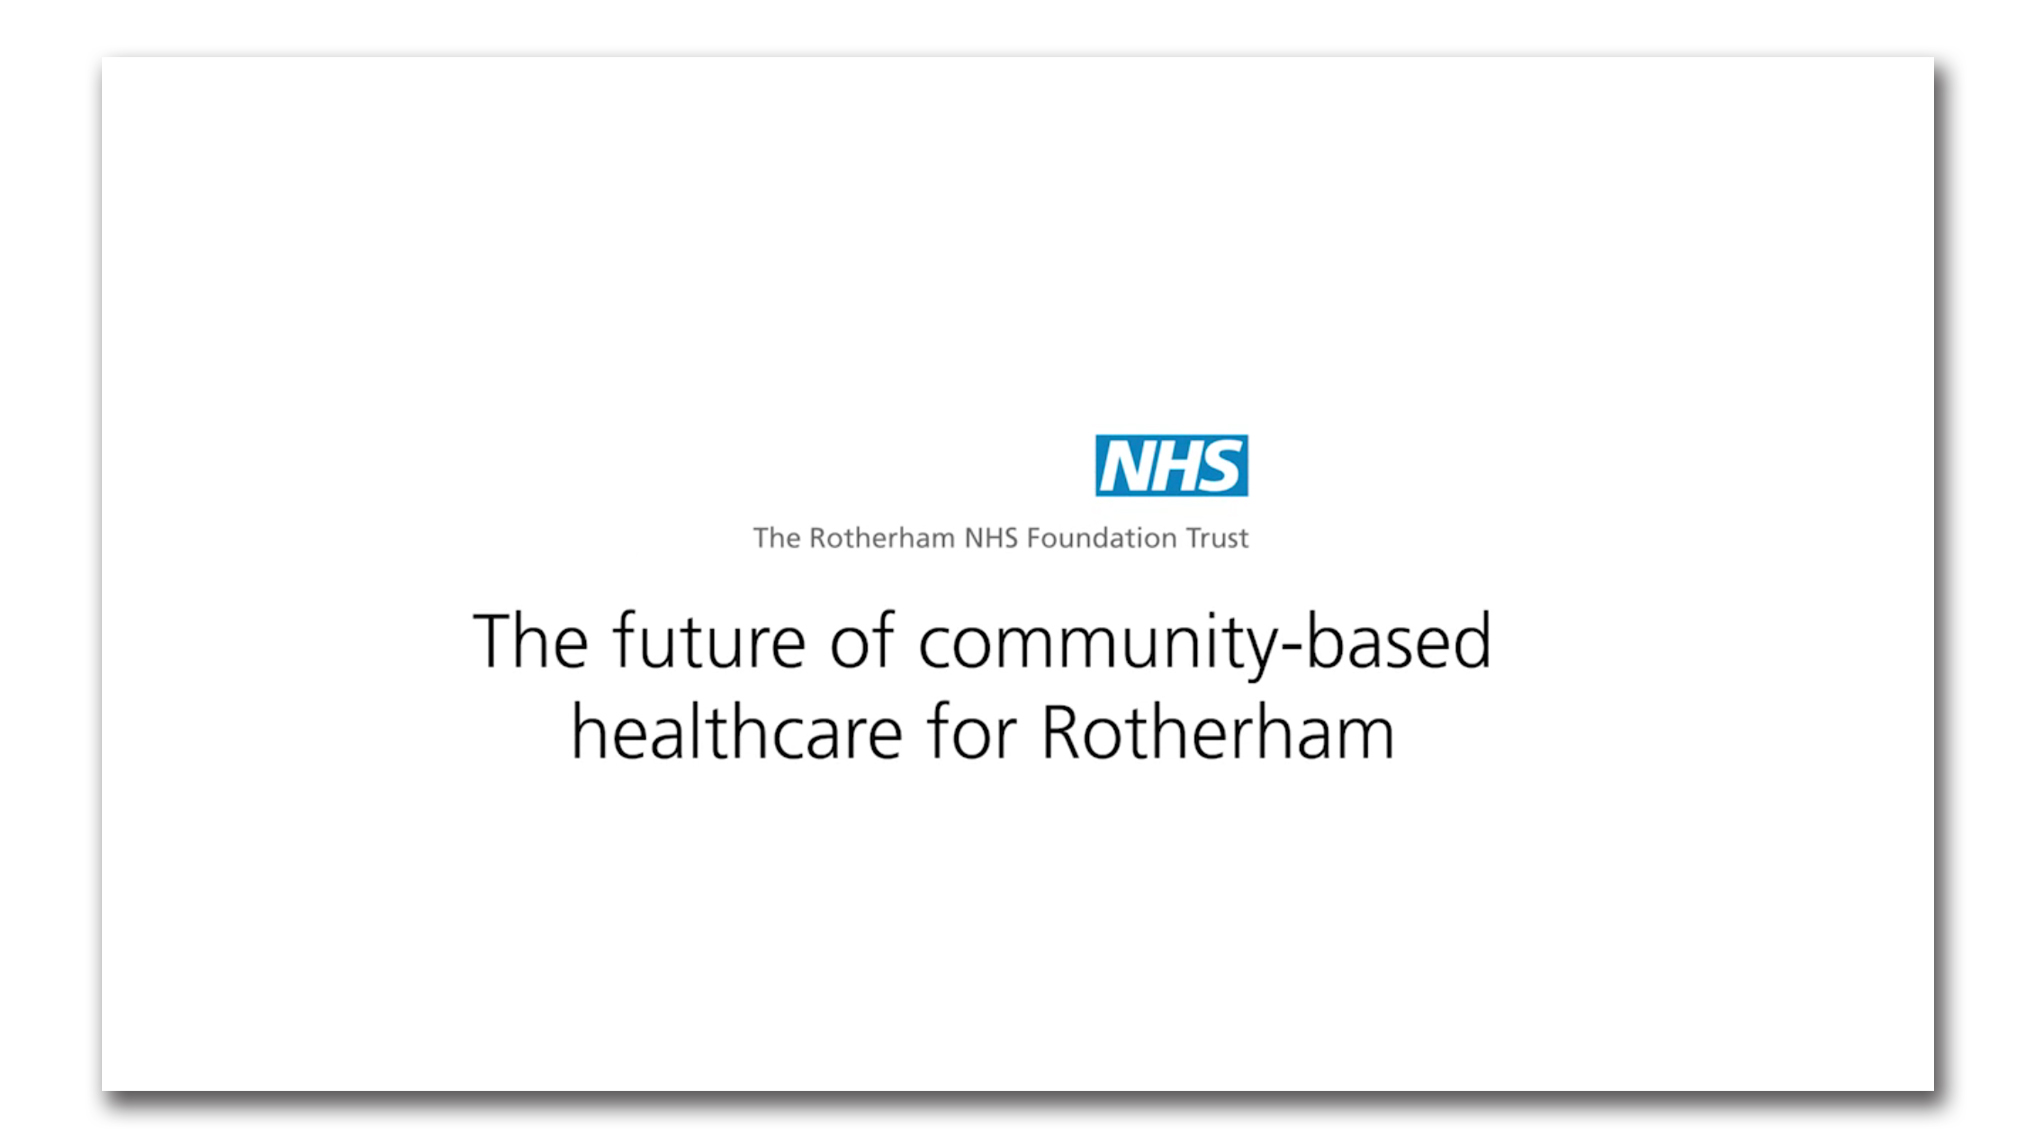 Whiteboard animation for Rotherham's community-based healthcare plans